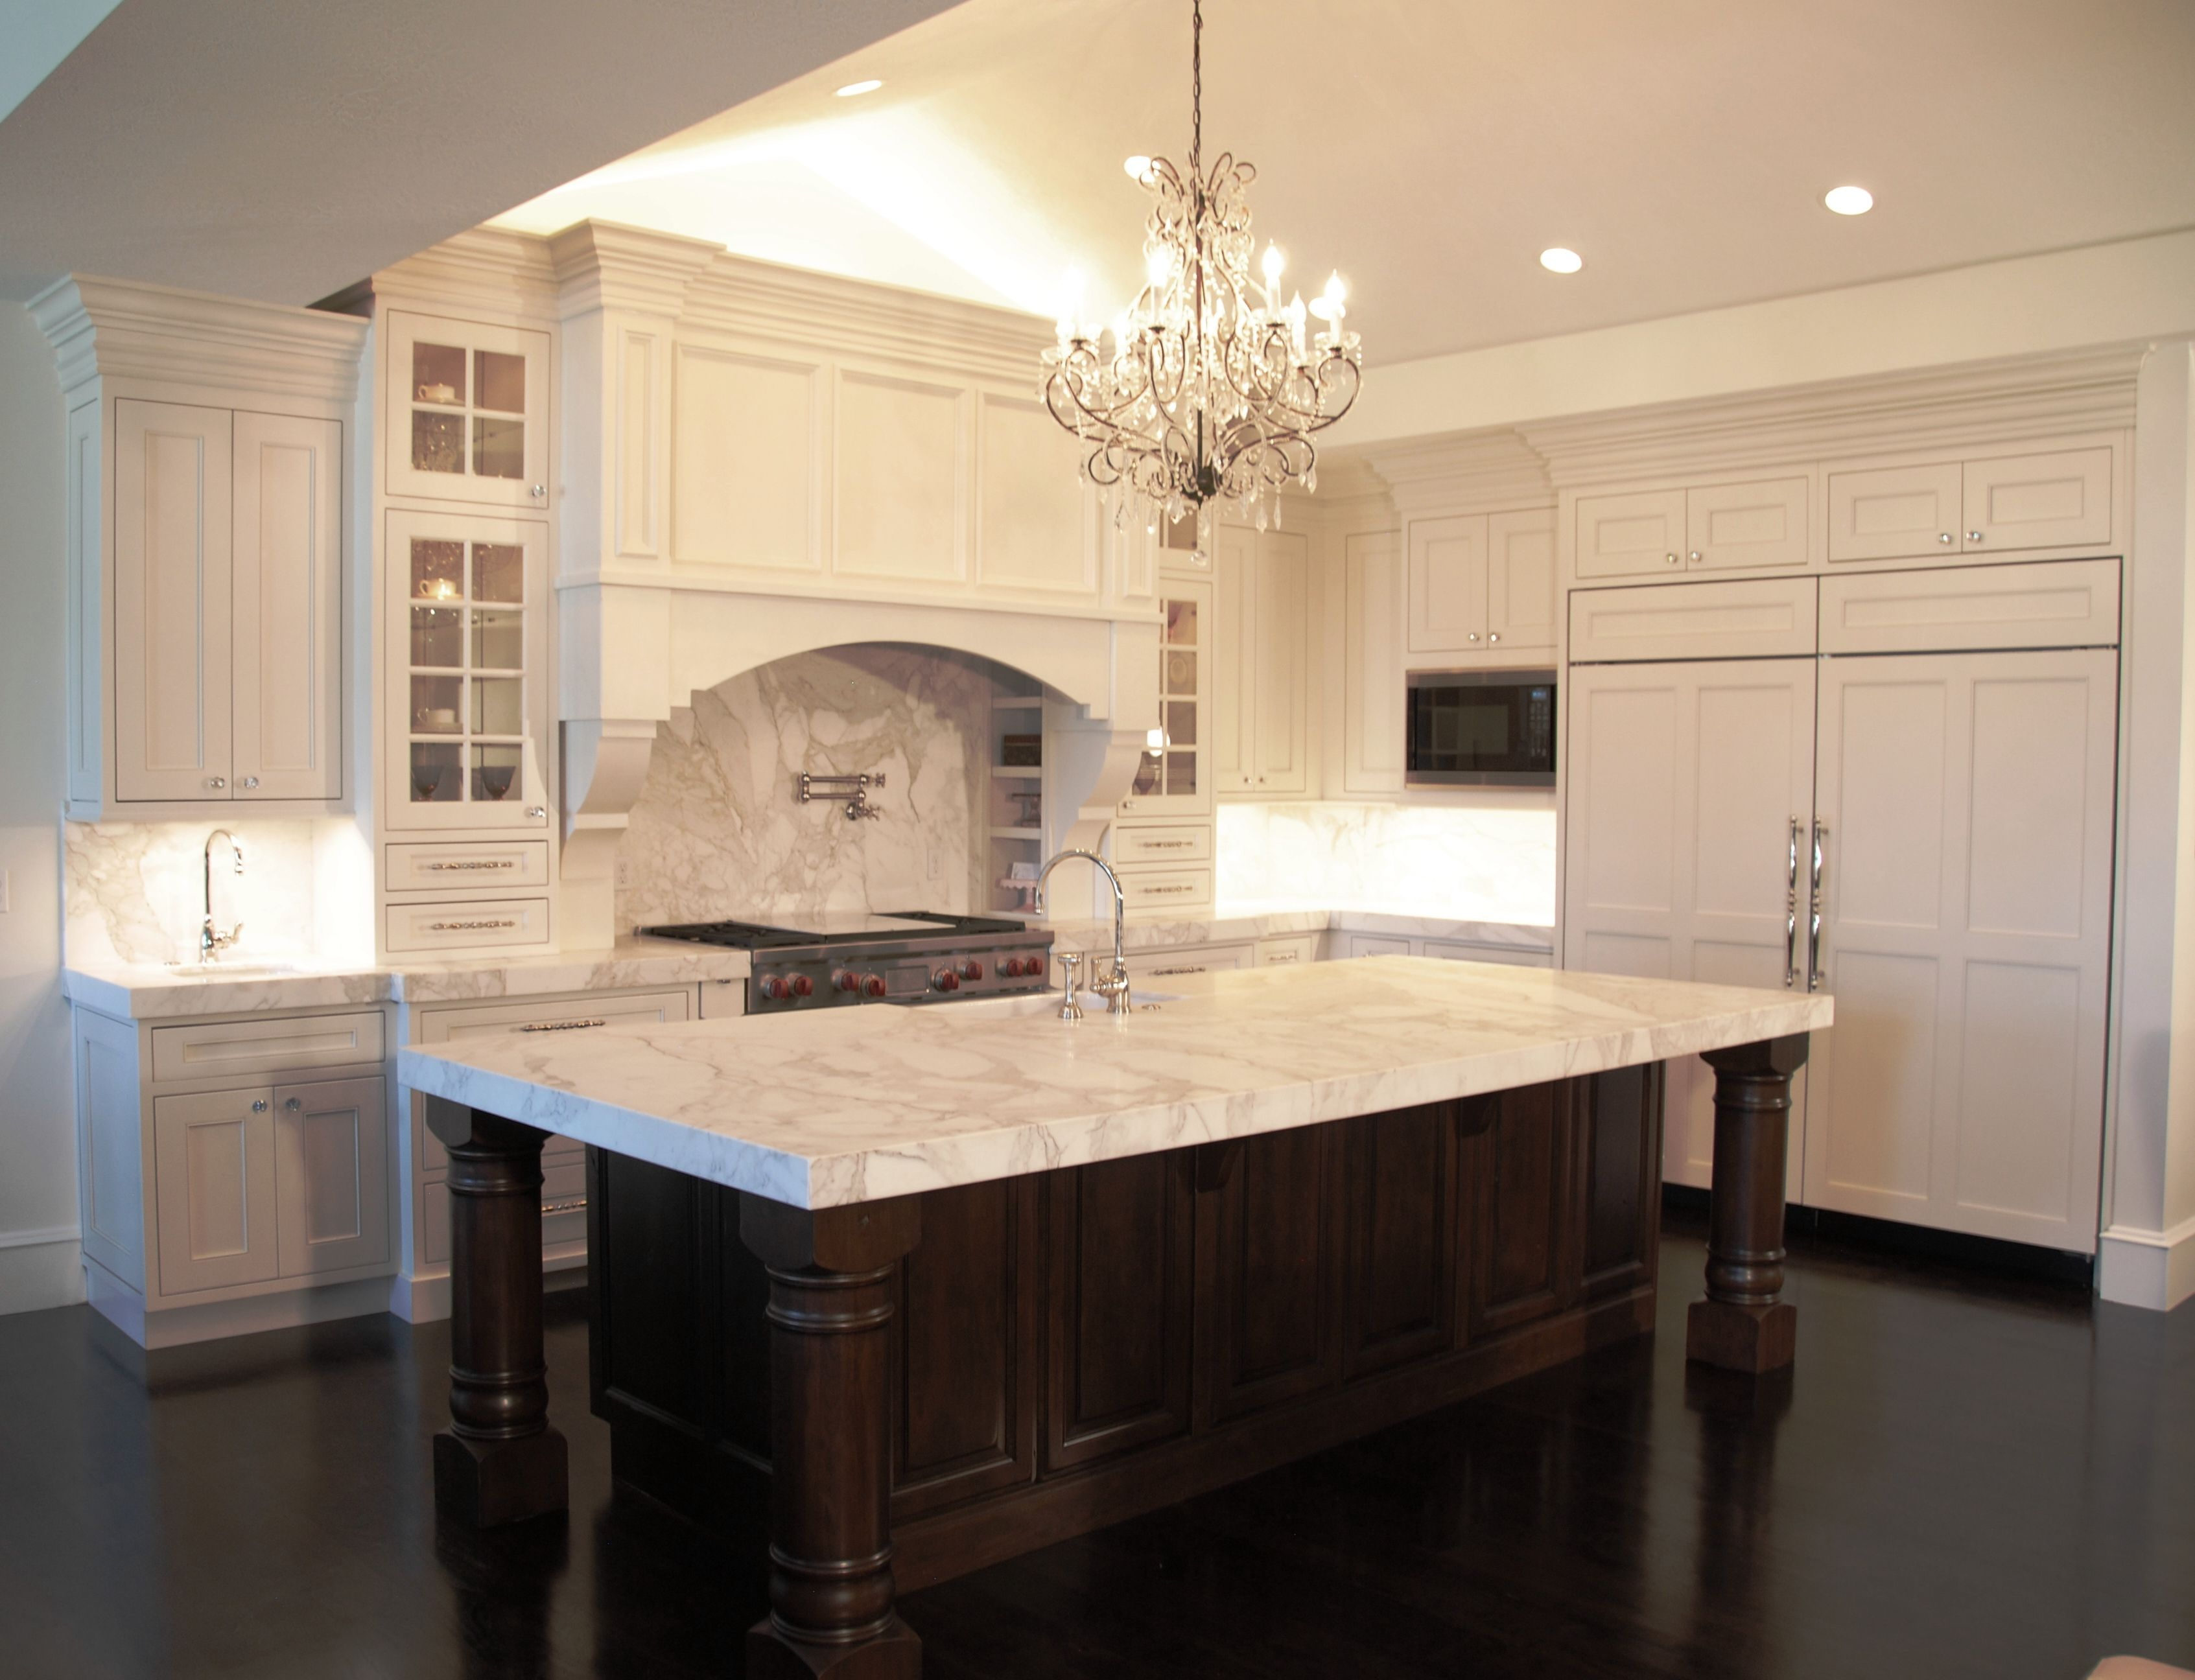 images about kitchen cabinets on pinterest antique white kitchens traditional kitchens and islands